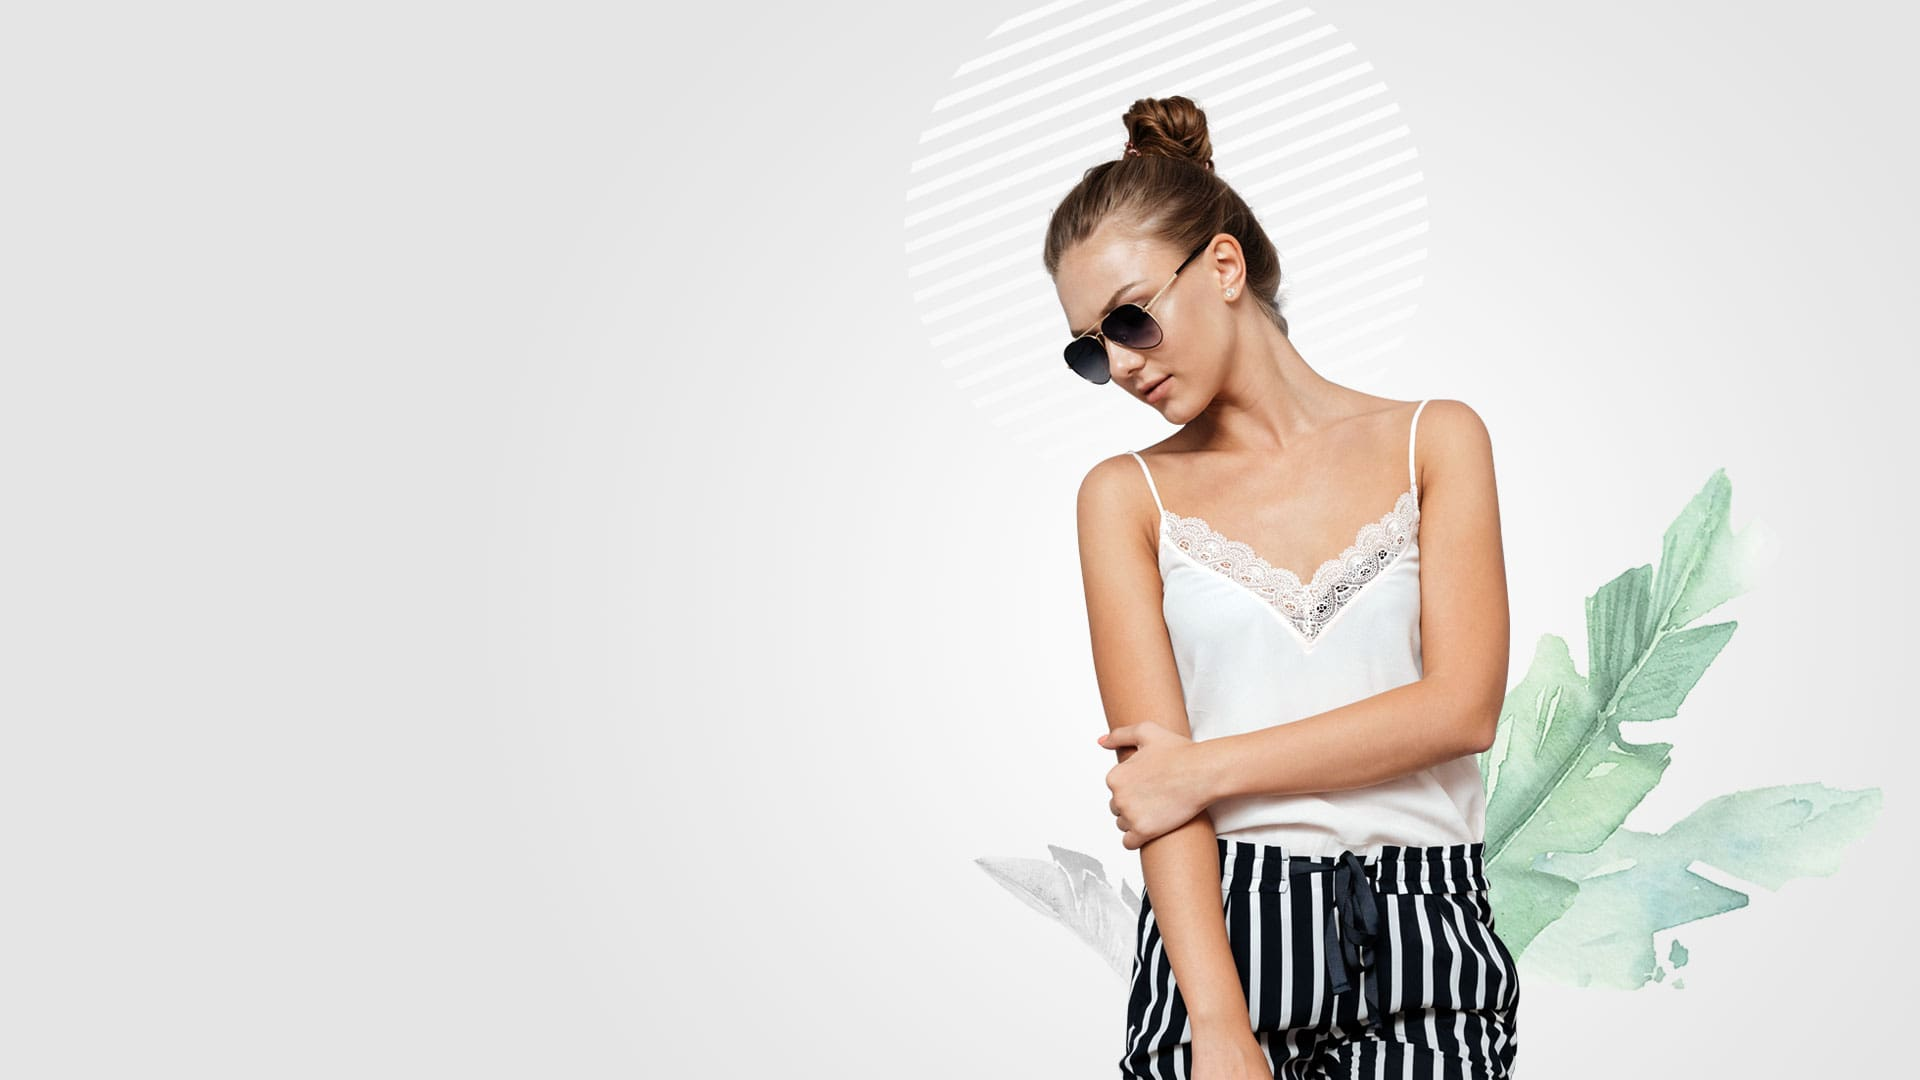 Find Your New Favorite Clothing